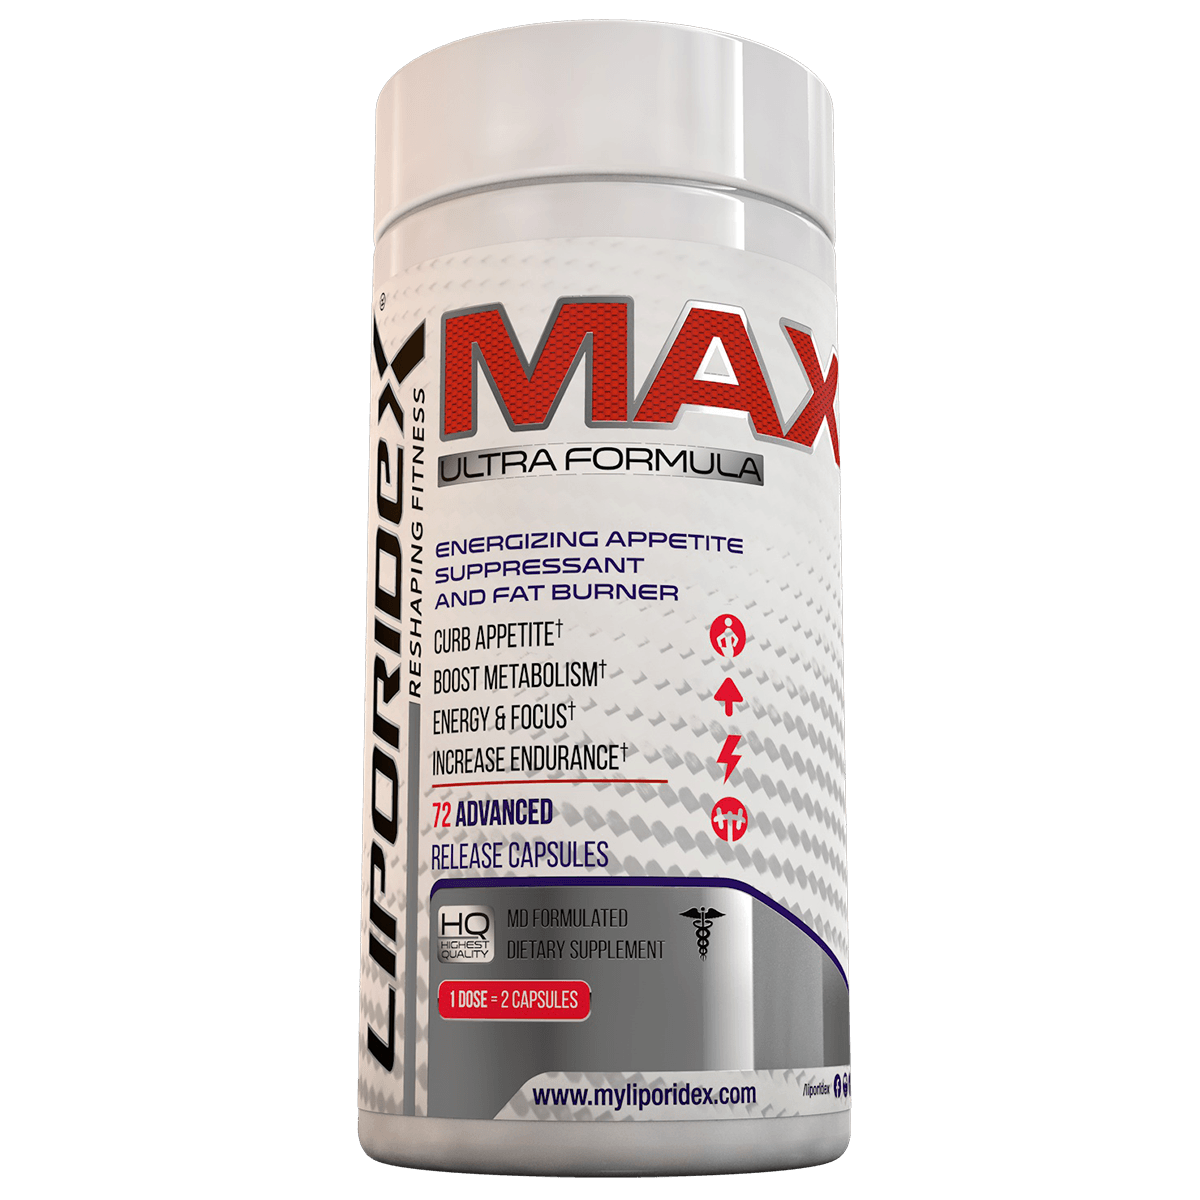 liporidex max appetite suppressant